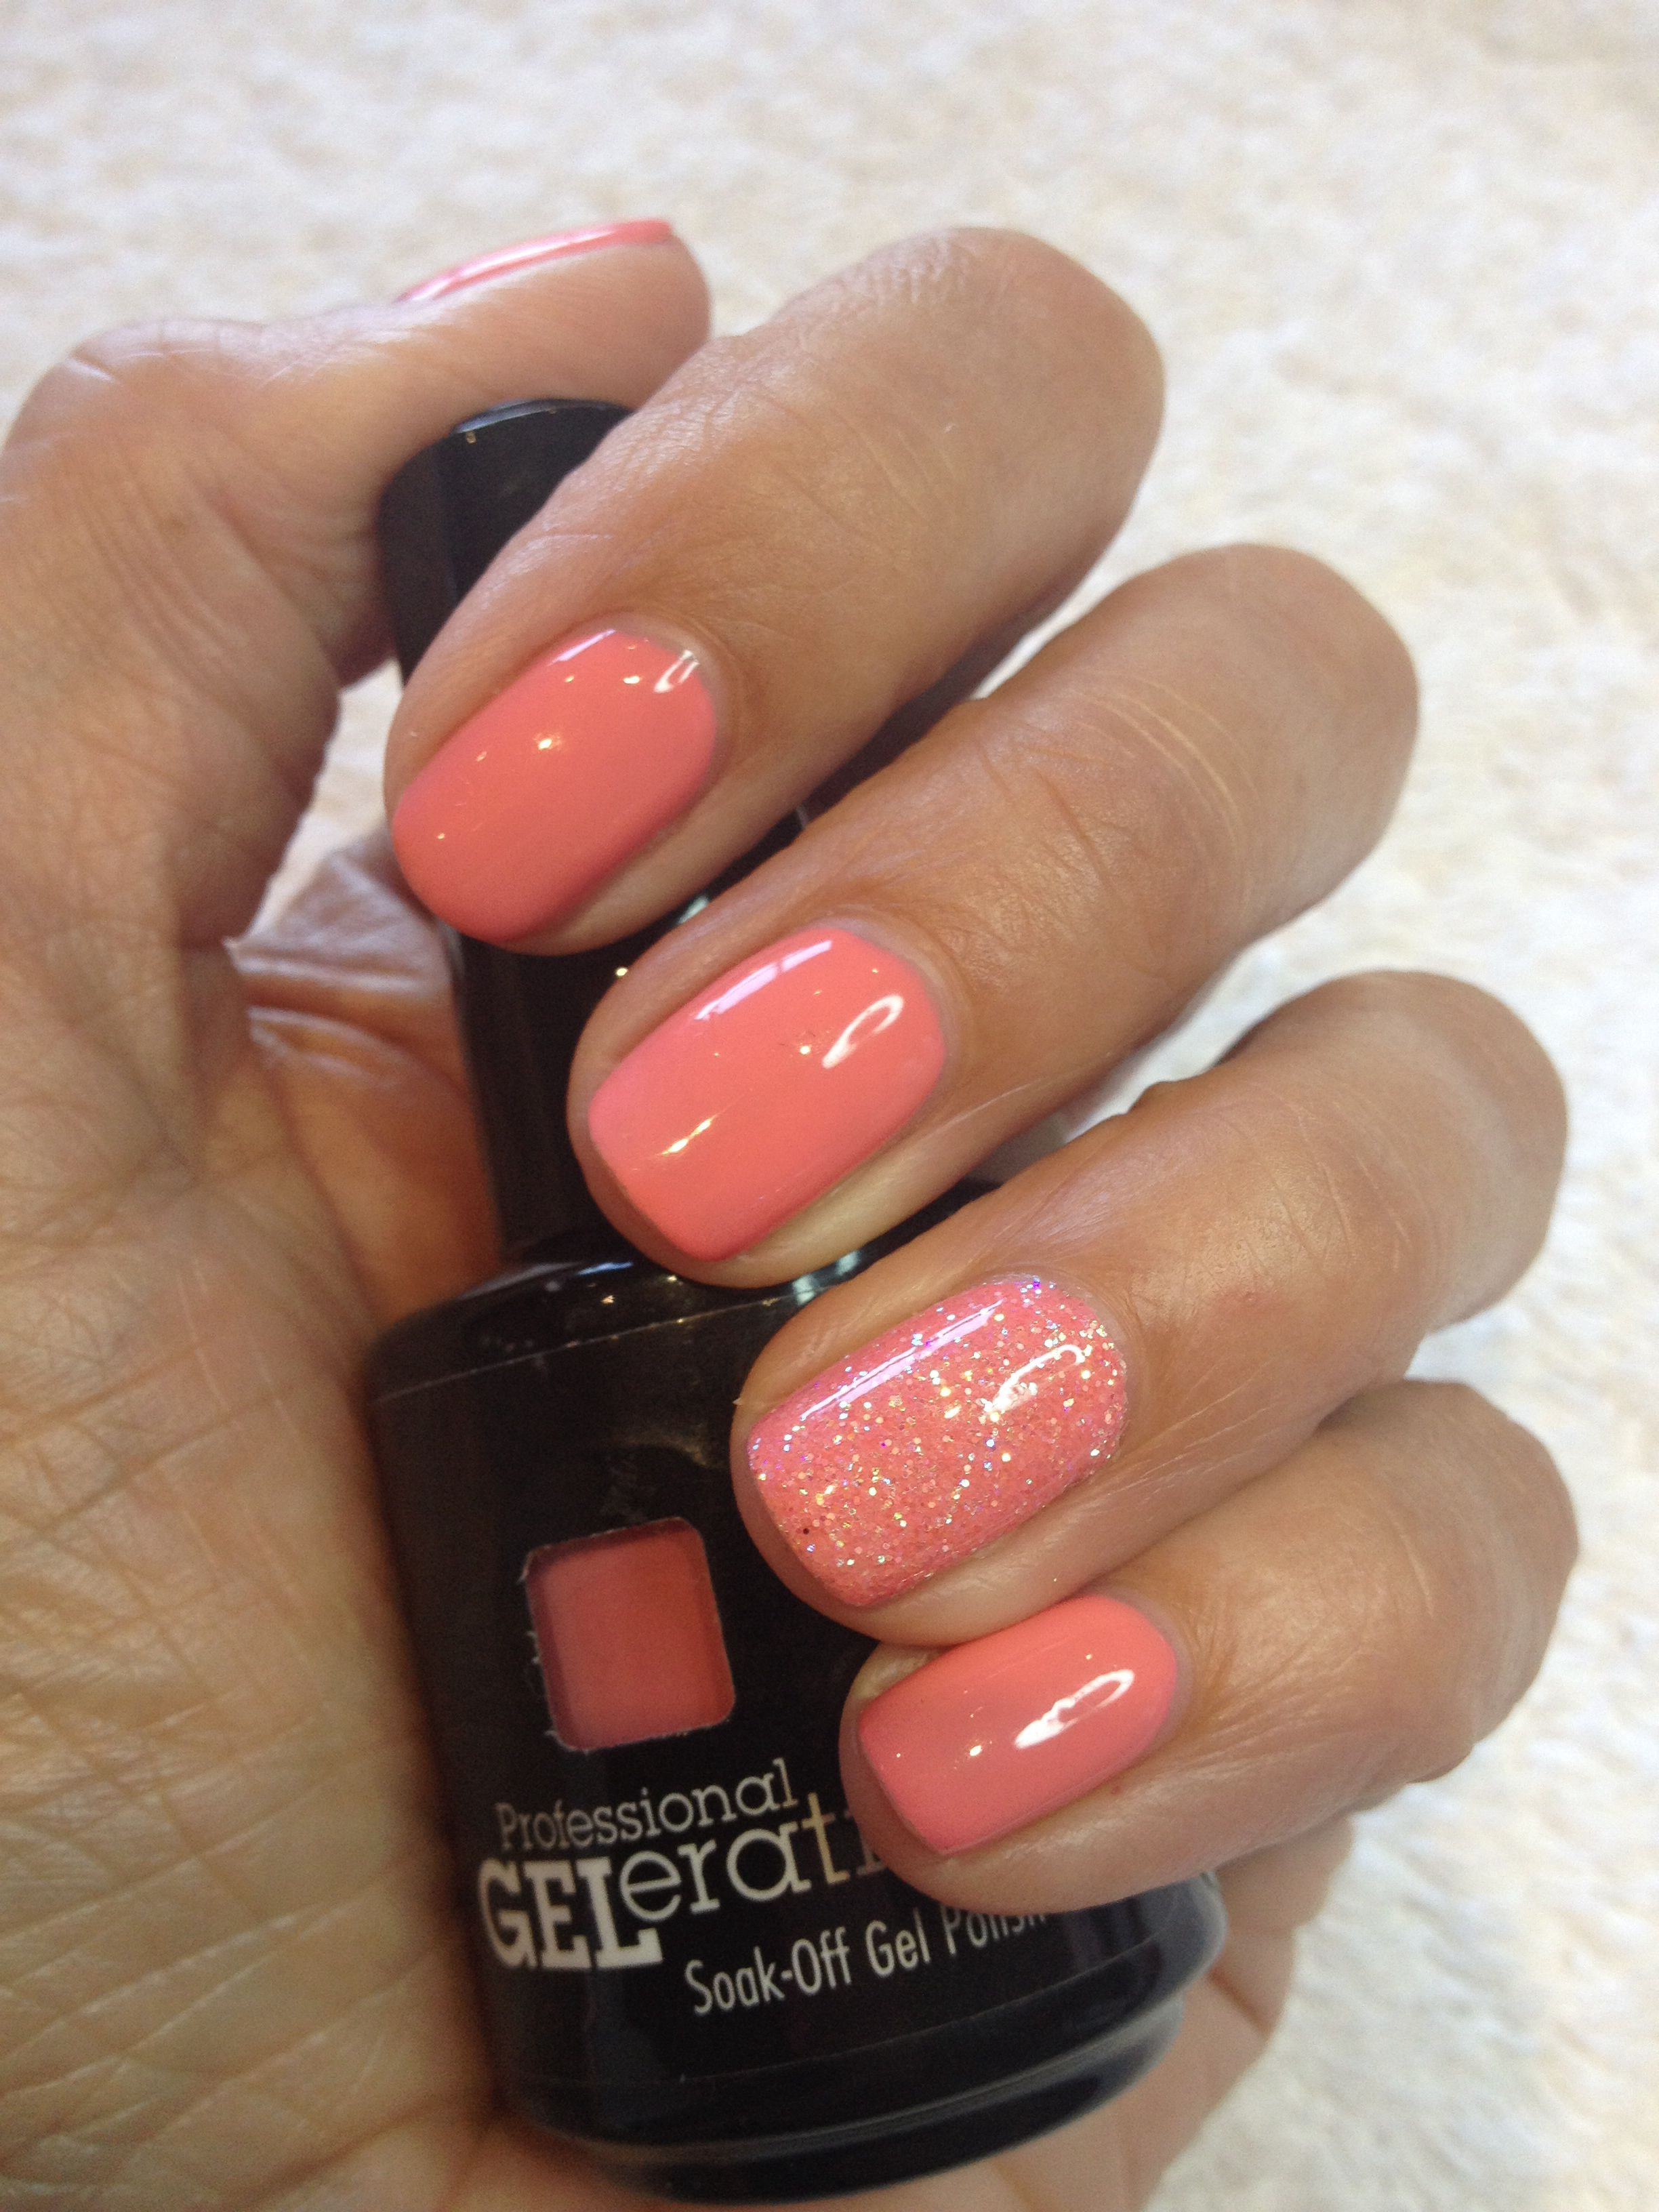 Pink Summery Jessica Geleration Gel Nails With An Accent Of Glitter By Www Tlcbeautytherapy